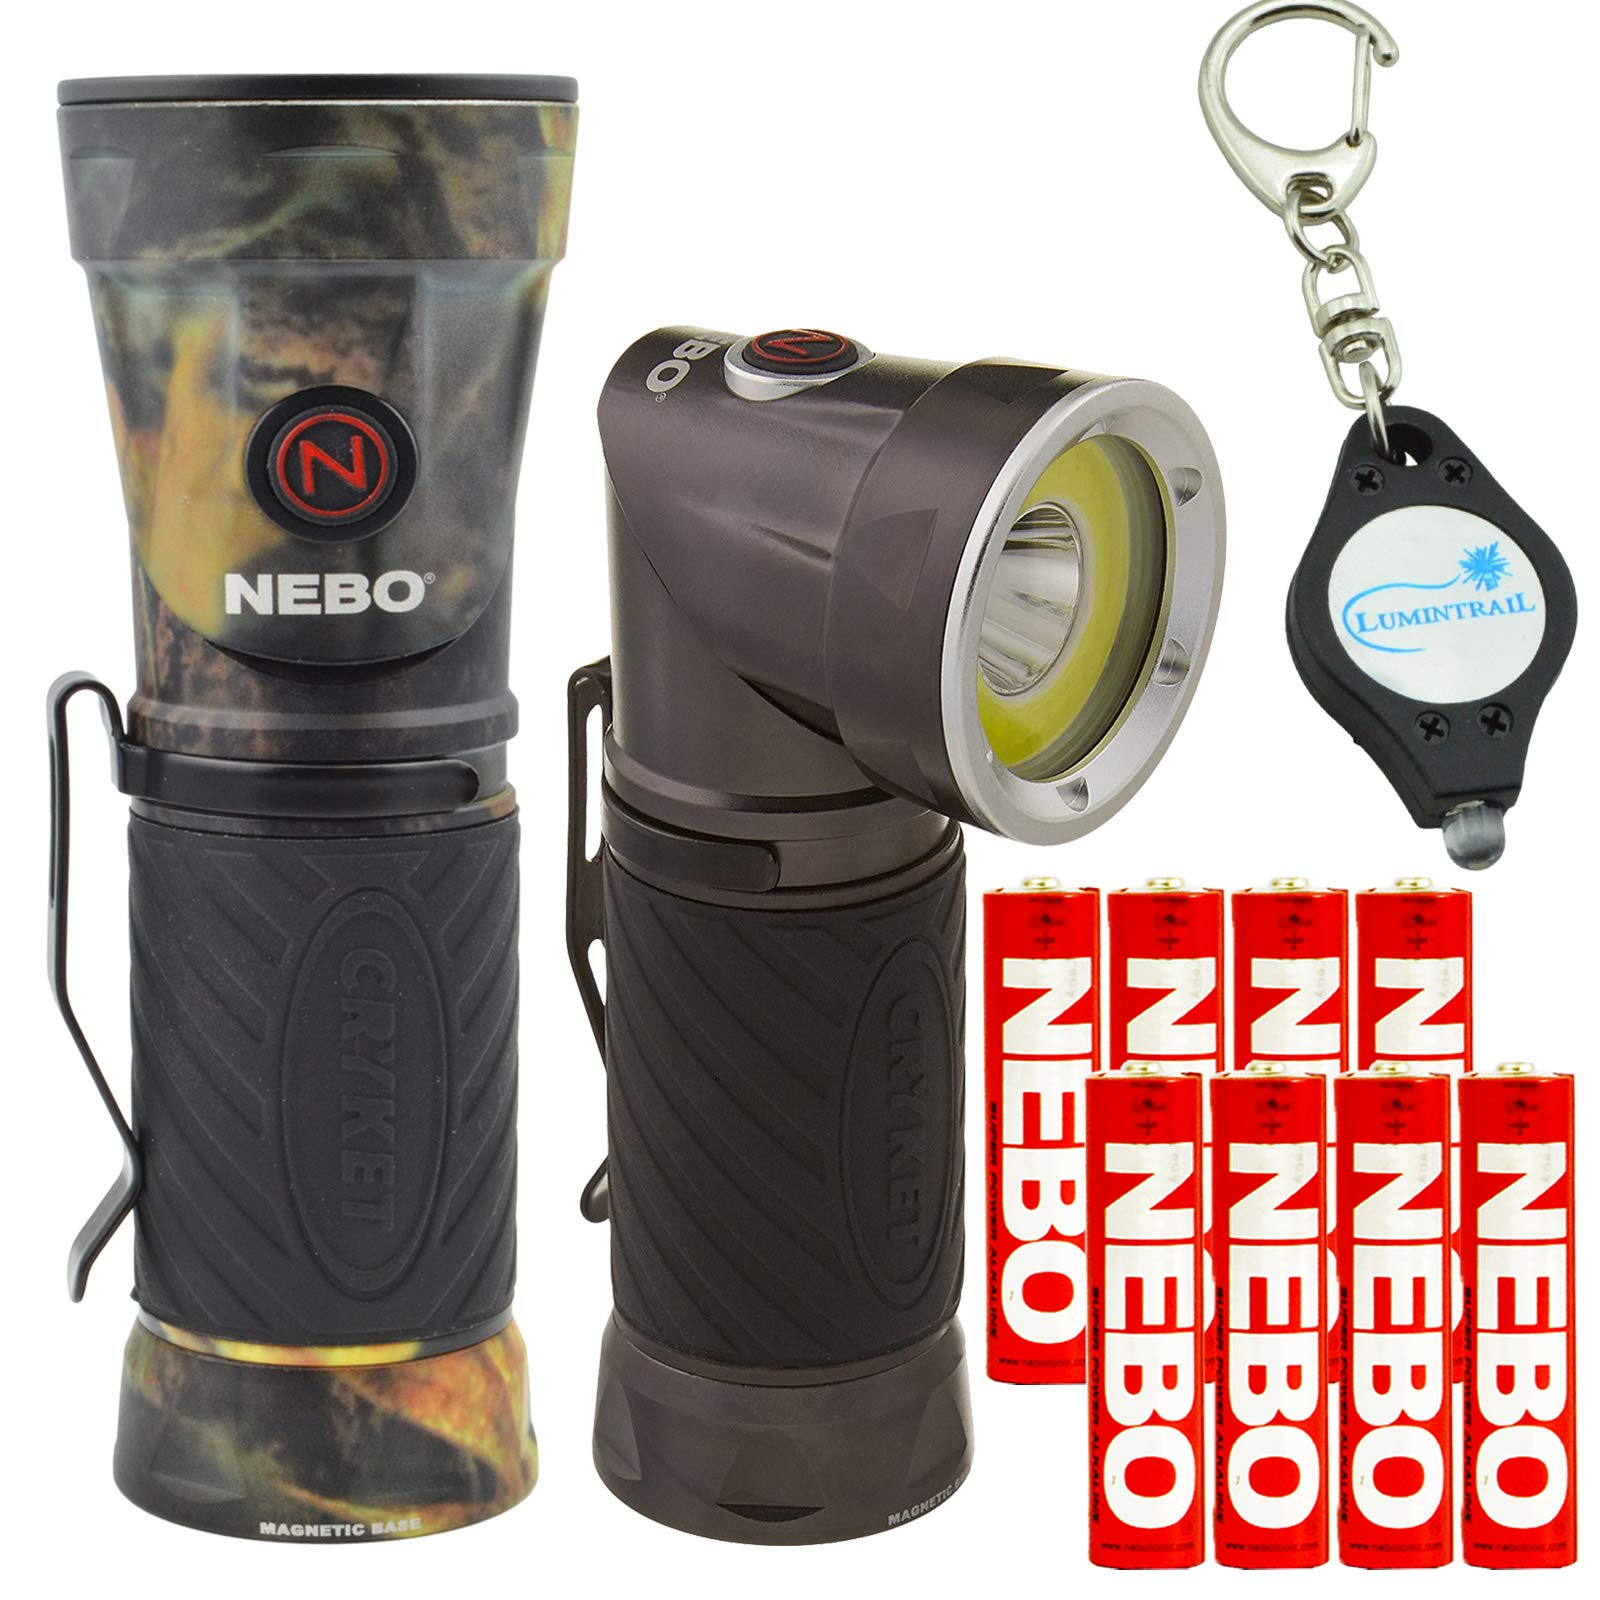 Nebo Cryket 6437 LED Work Light Spot Light Red LED Swivel Head with 8 Nebo AAA Batteries and Lumintrail Keychain Light